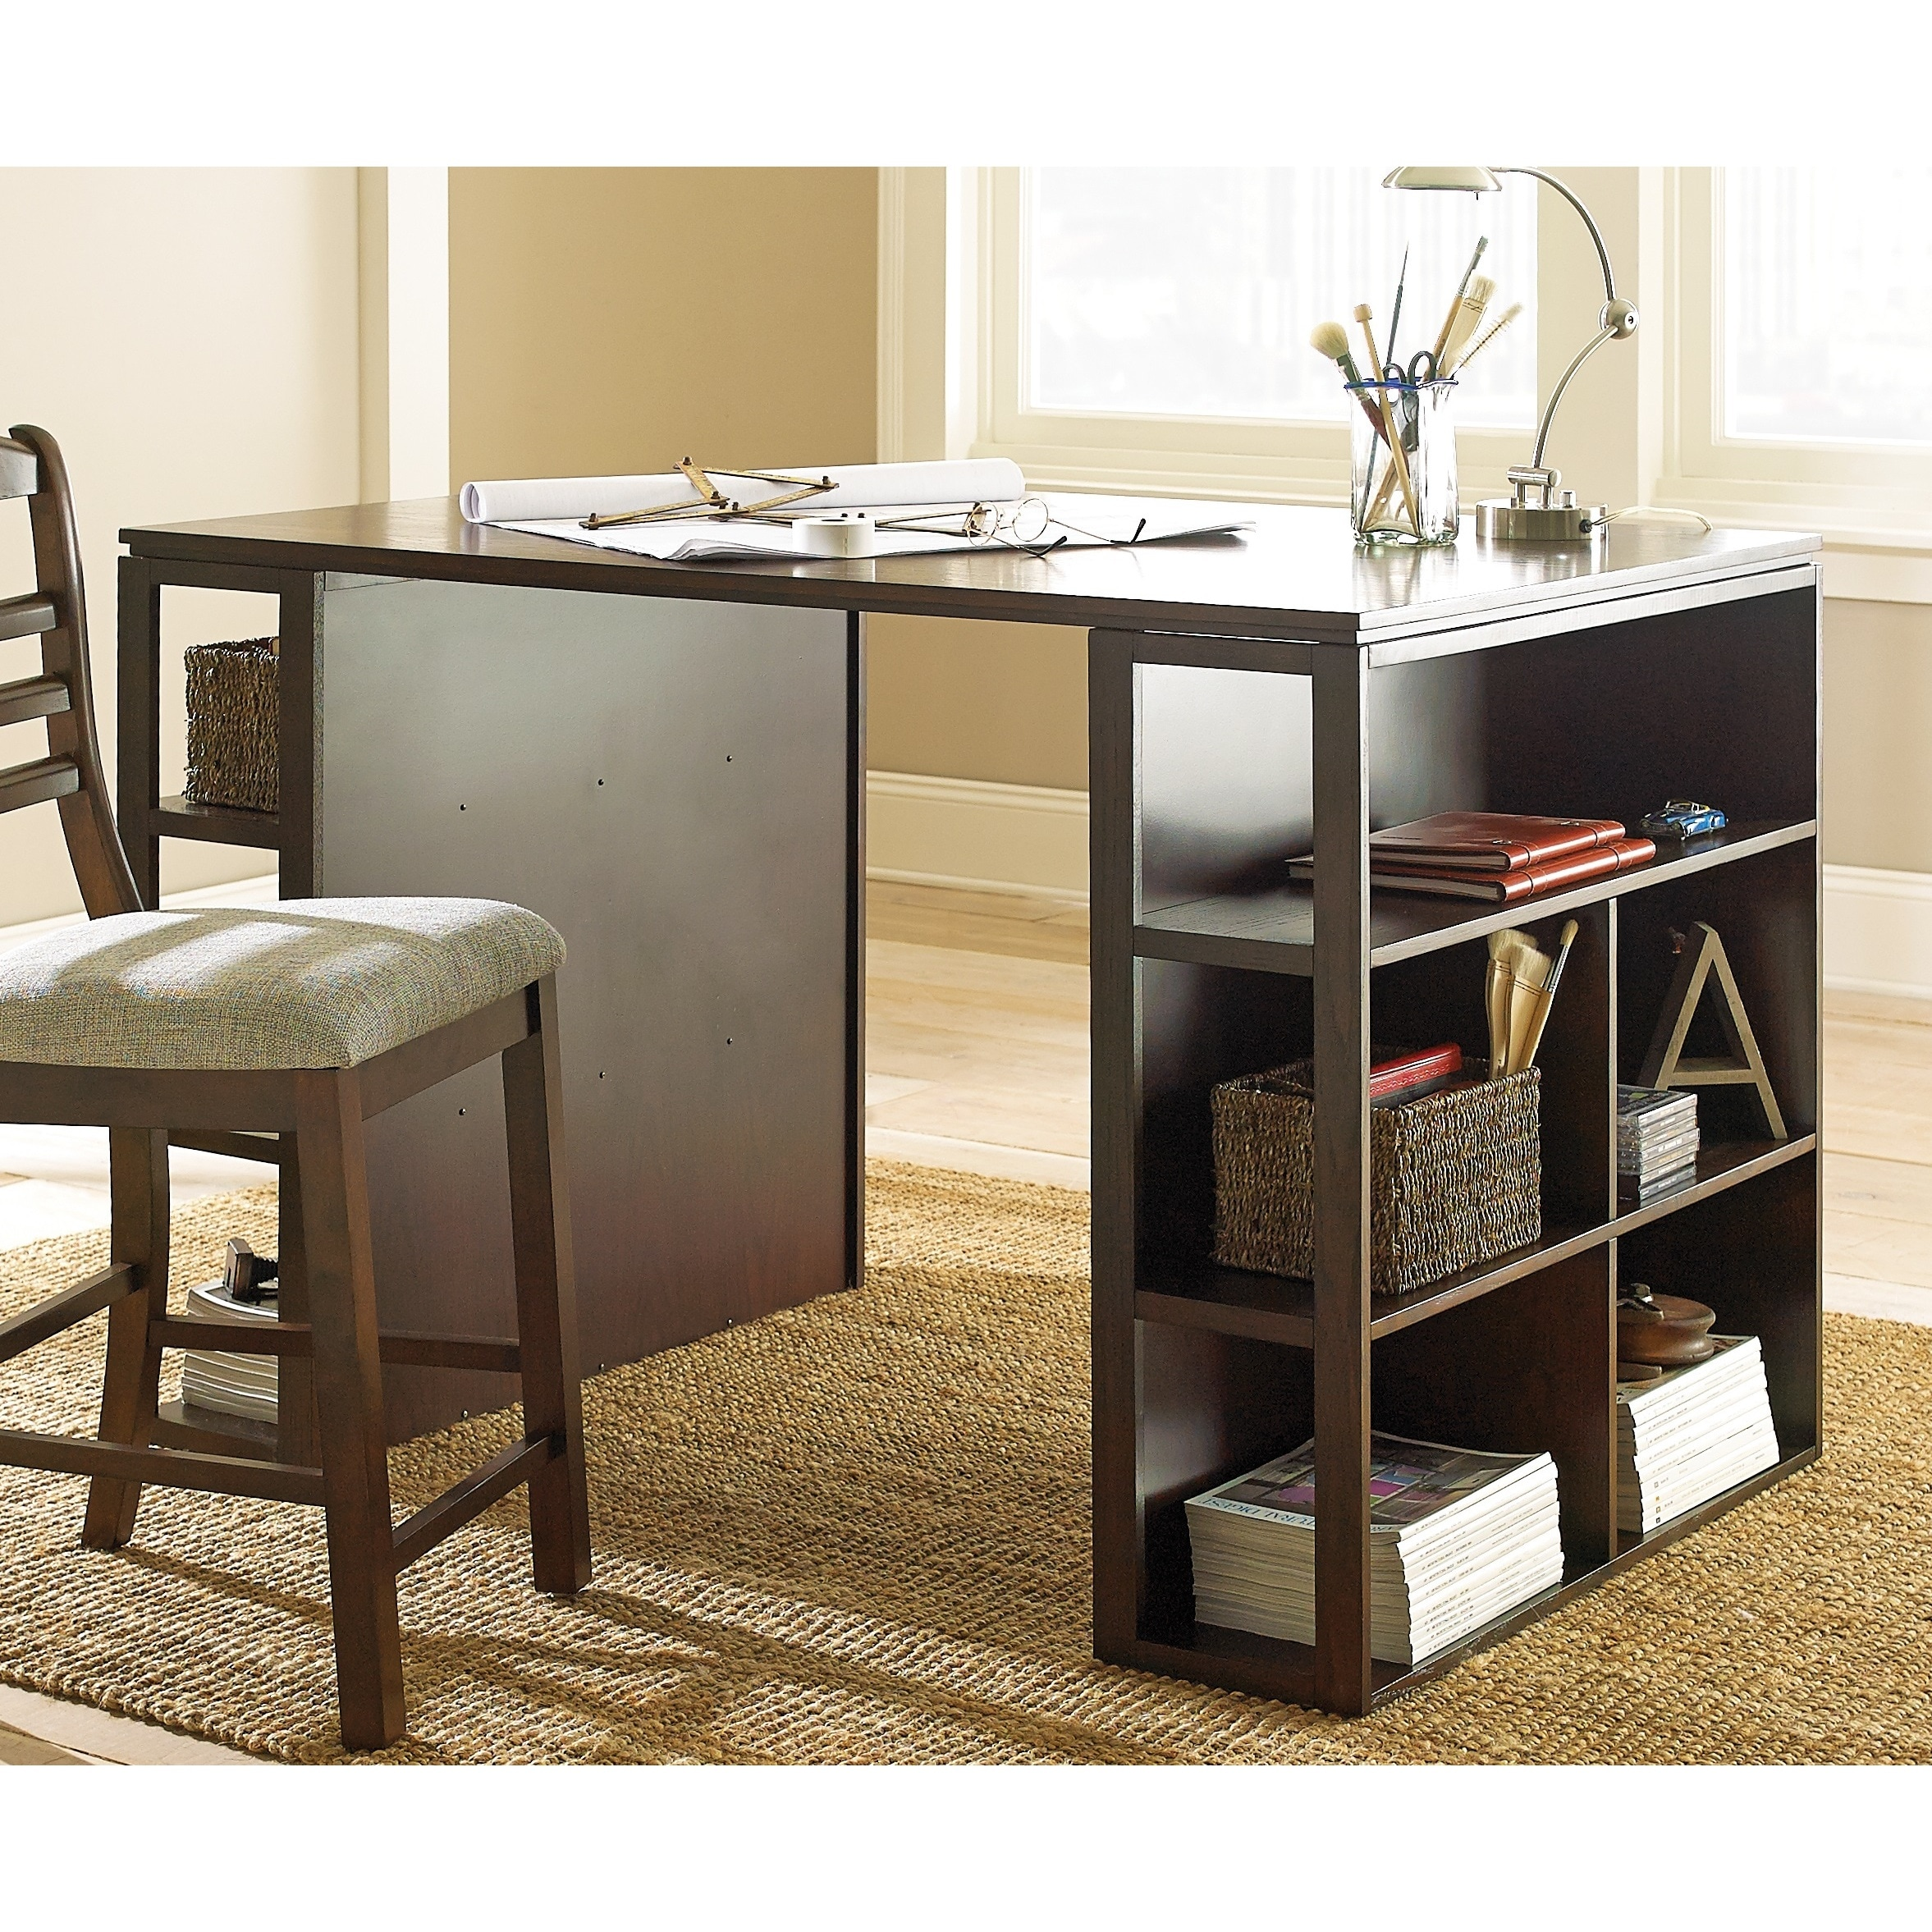 Shop barclay black counter height desk by greyson living free shipping today overstock com 9272842